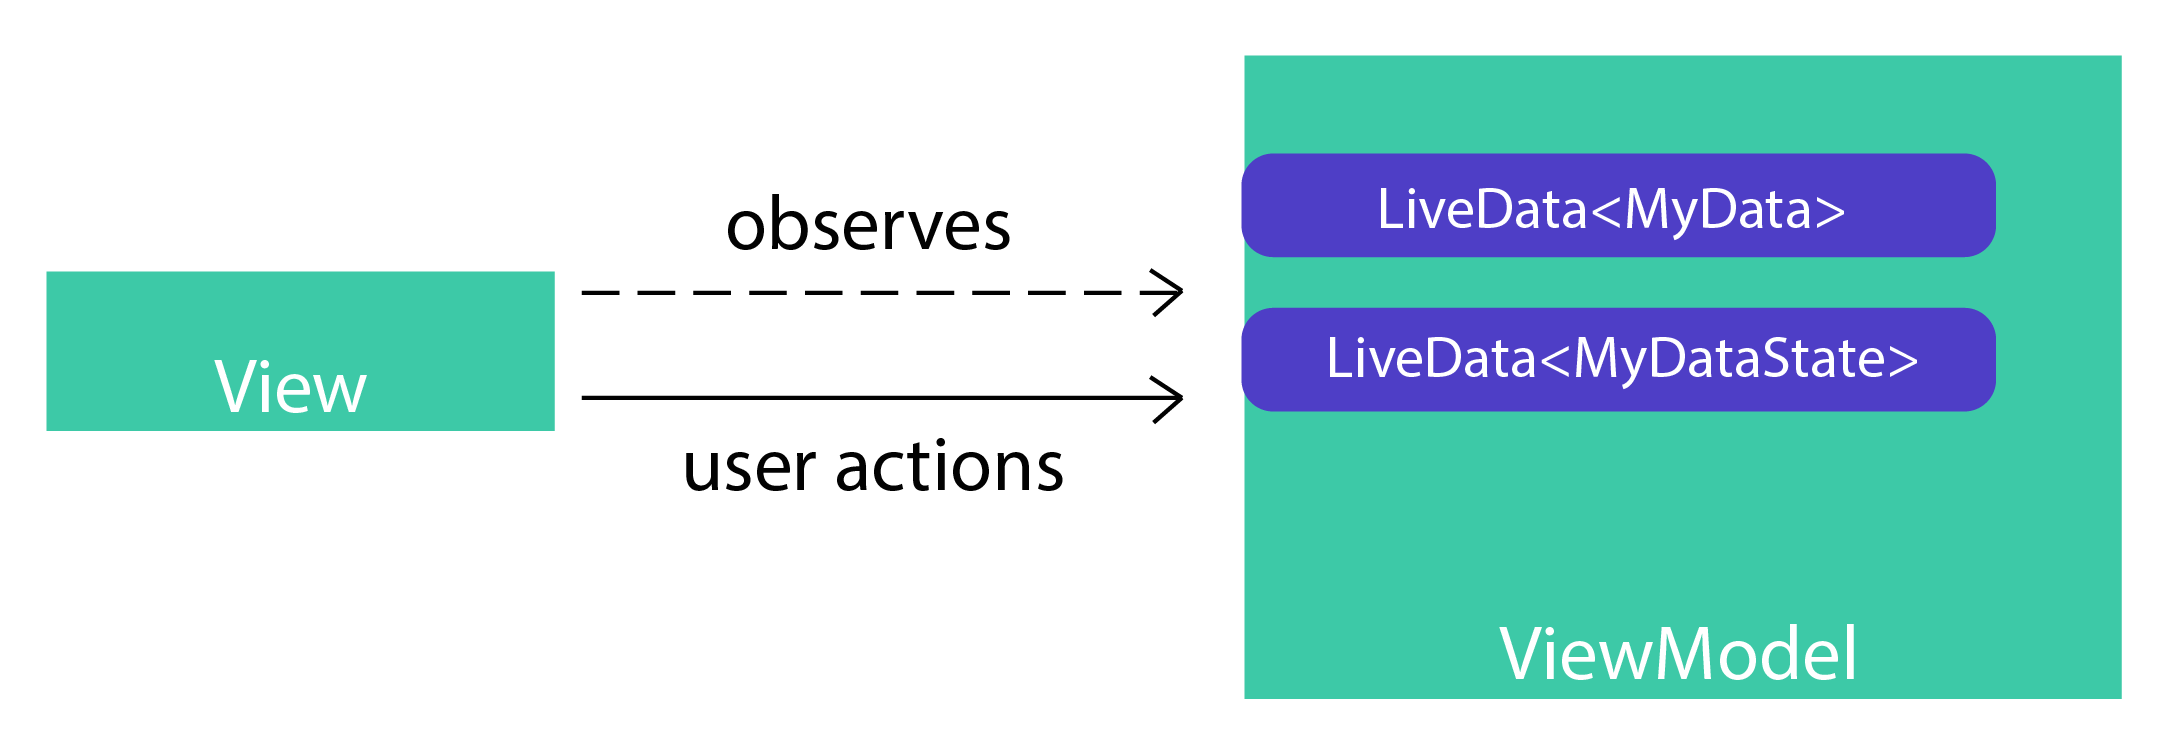 Introduction to LiveData in Android